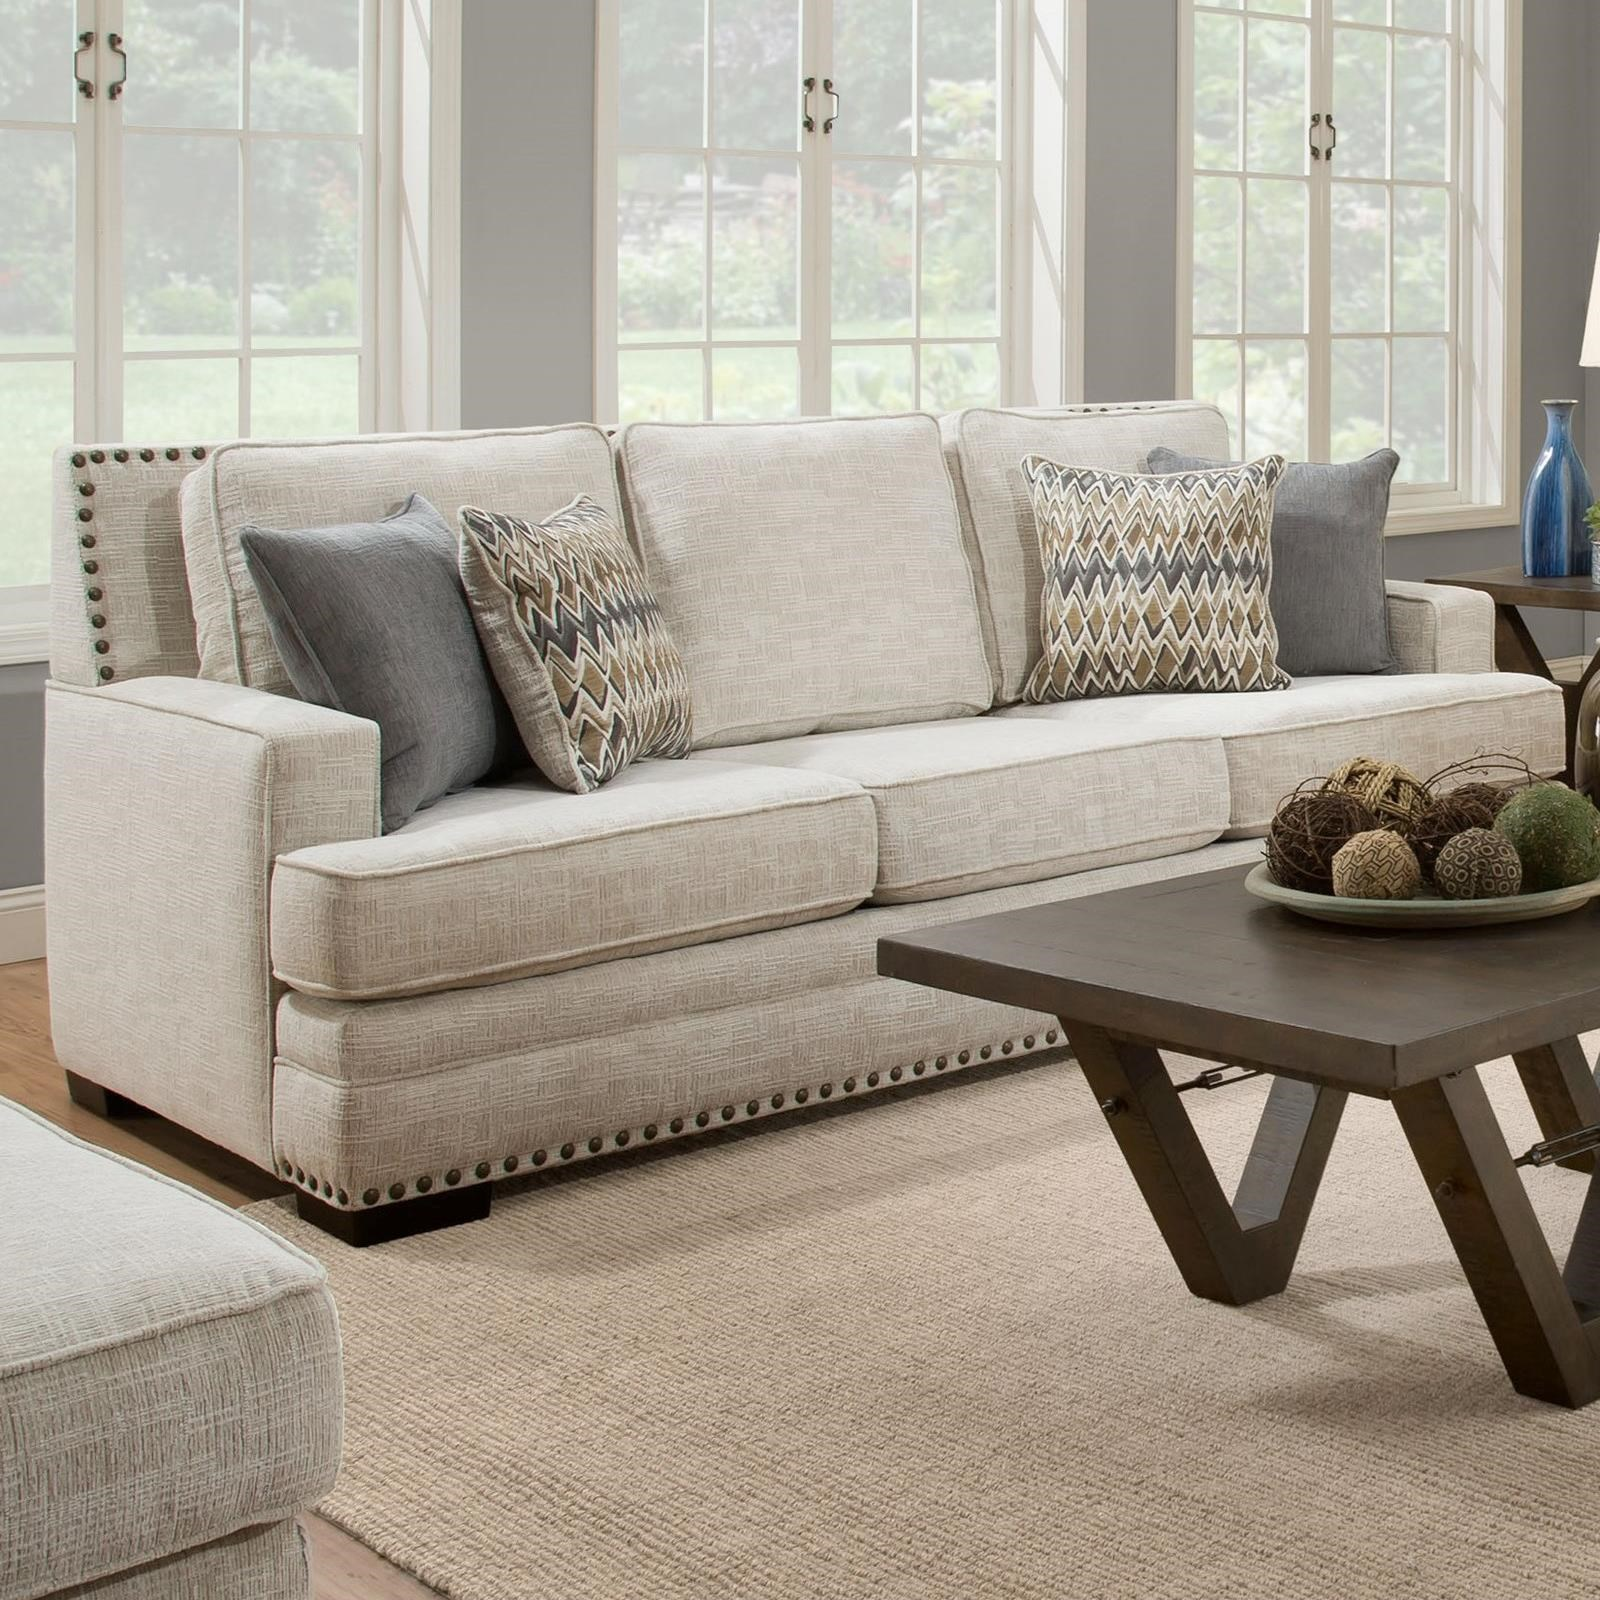 Albany Industries Sofa Reviews Review Home Co